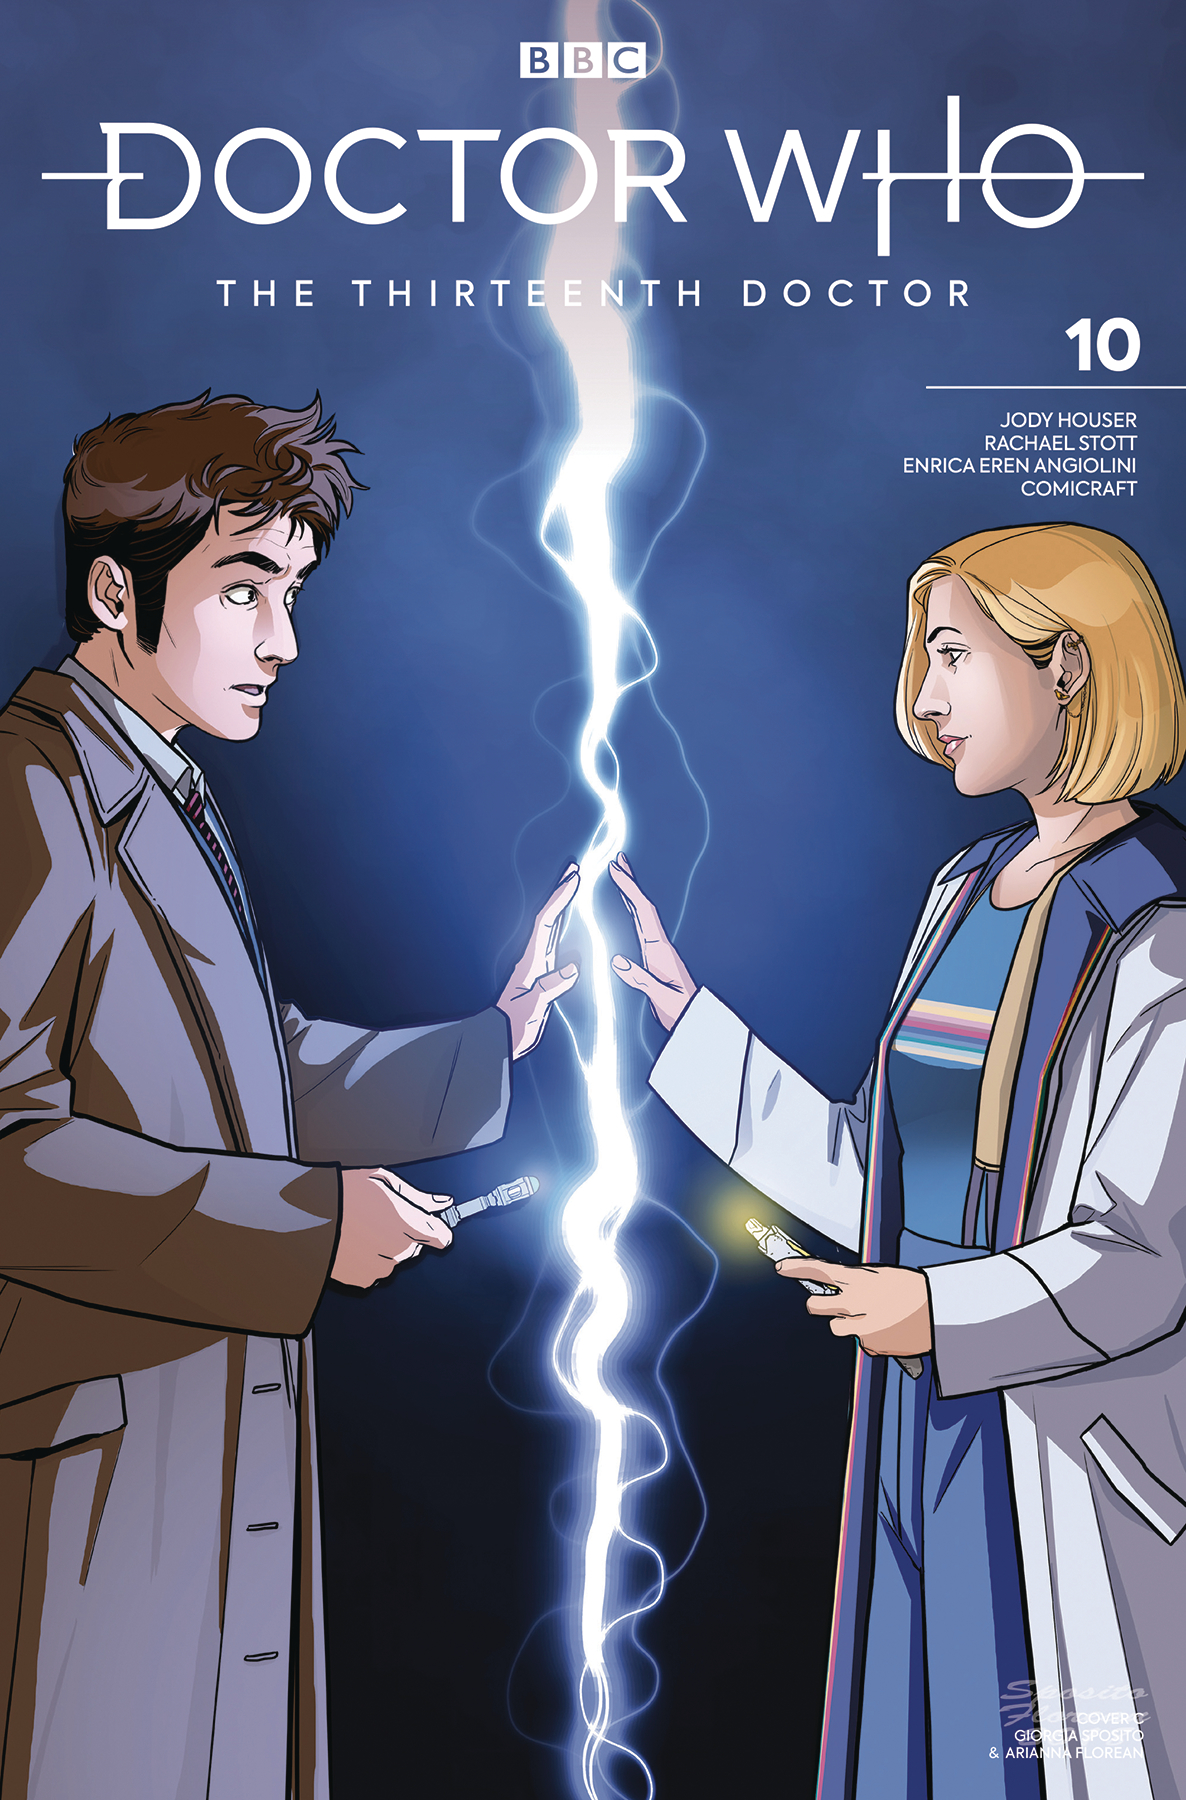 DOCTOR WHO 13TH #10 CVR C 10TH DOCTOR